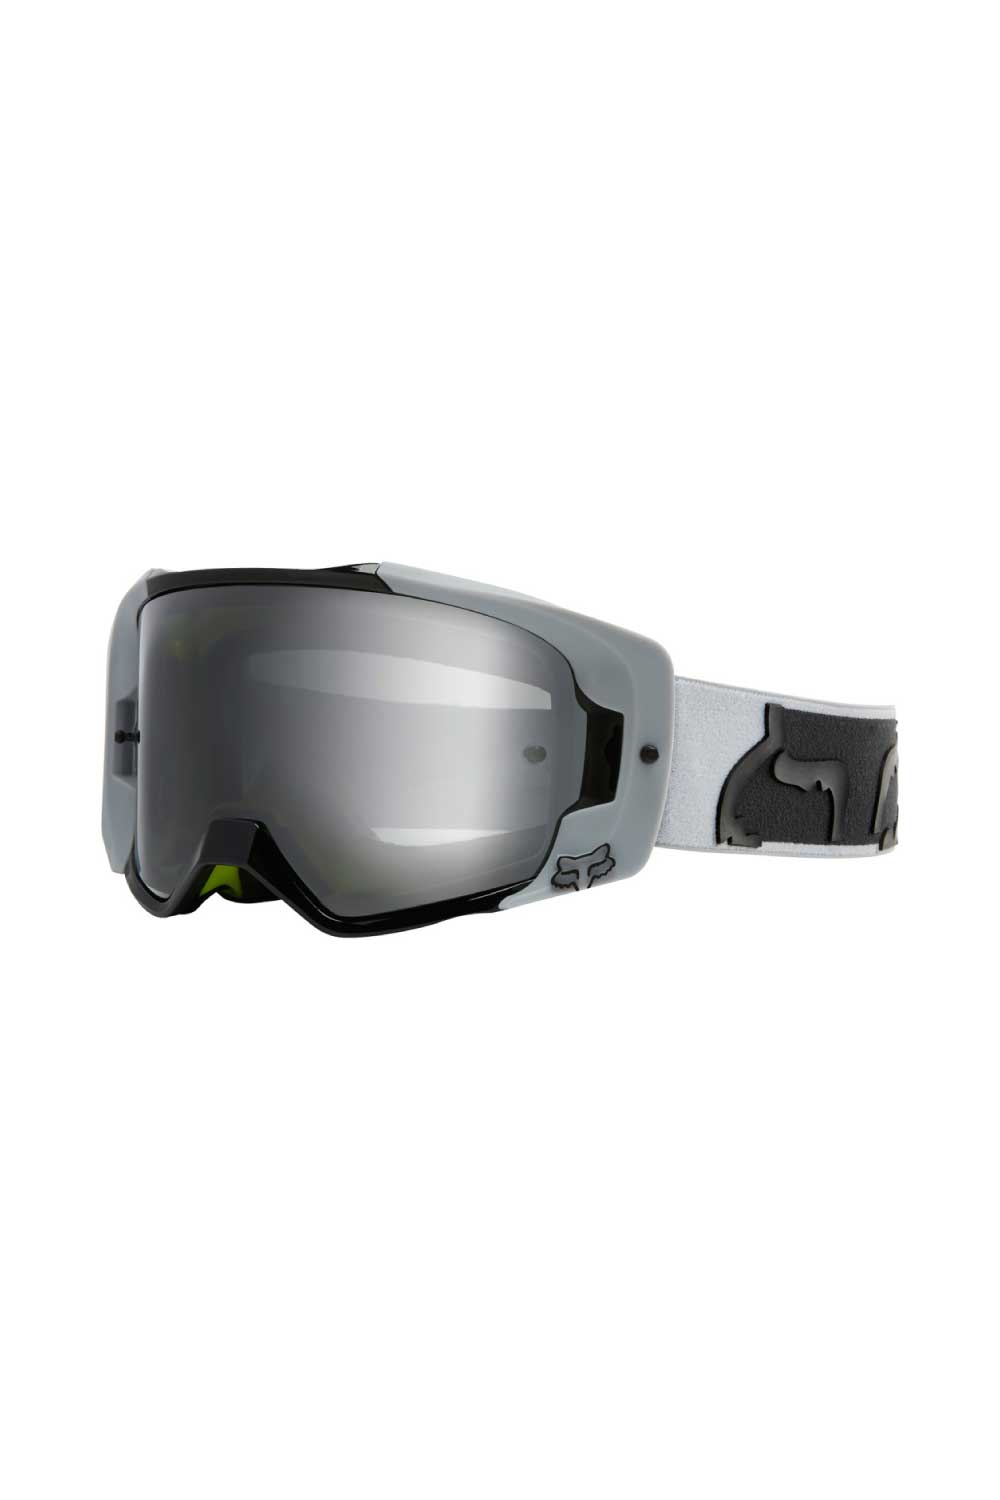 FOX Racing MT VUE DUSC MTB Goggle